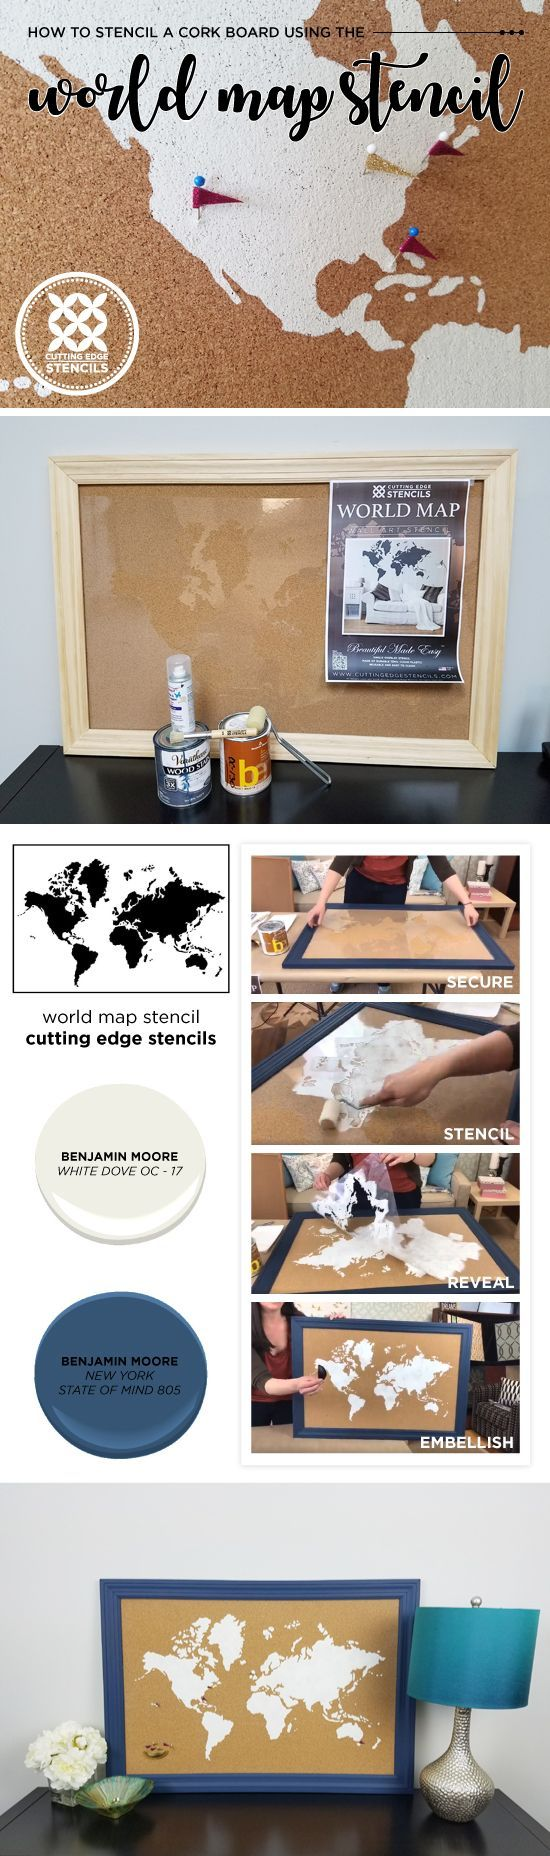 best 25 world map wall decal ideas on pinterest vinyl wall cutting edge stencils shares how to stencil a cork board using the world map wall art